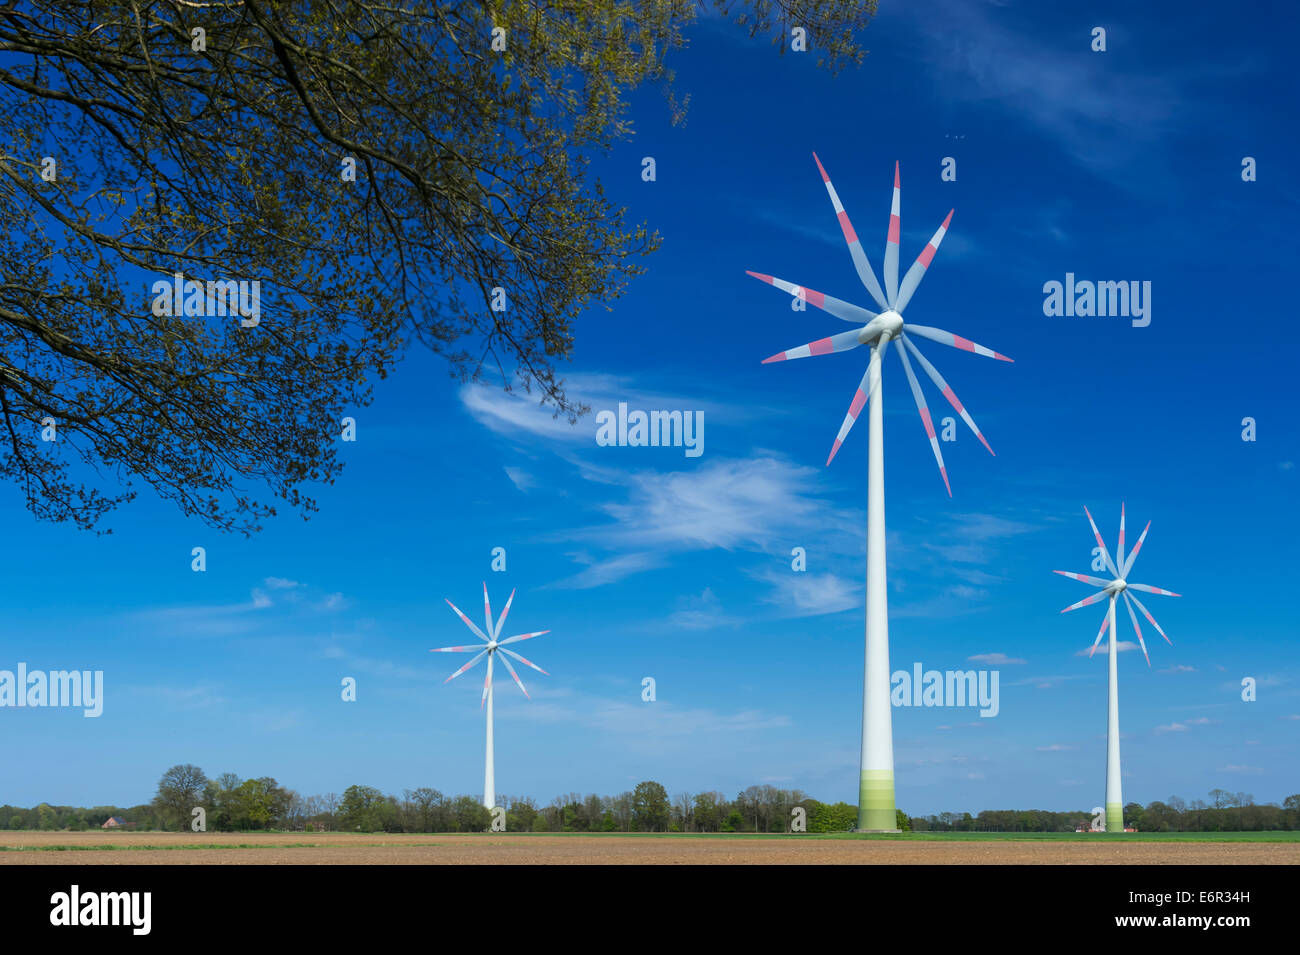 wind turbine, carum, vechta, vechta district, oldenburger münsterland, lower saxony, germany - Stock Image